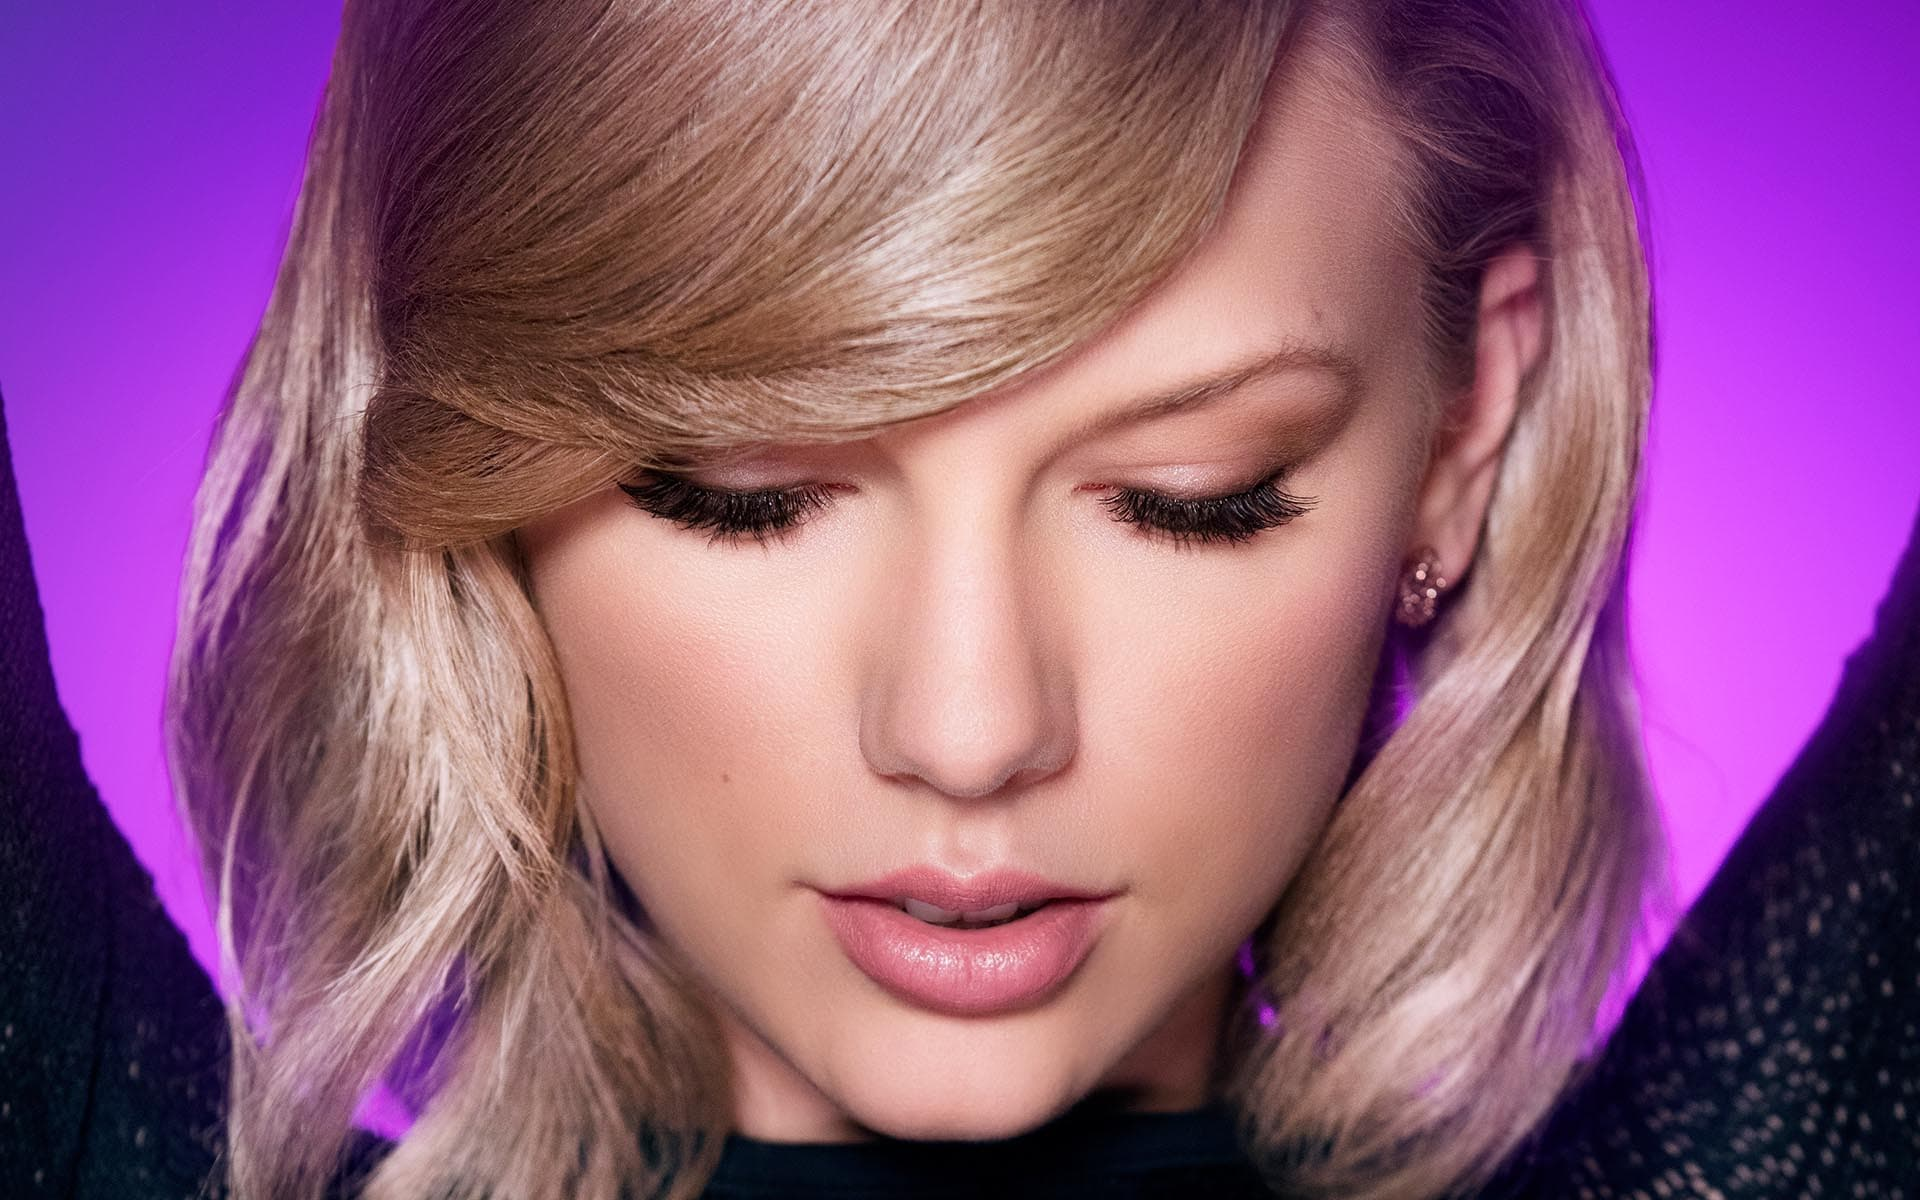 Taylor Swift Wallpapers High Quality Pictures Images for ...